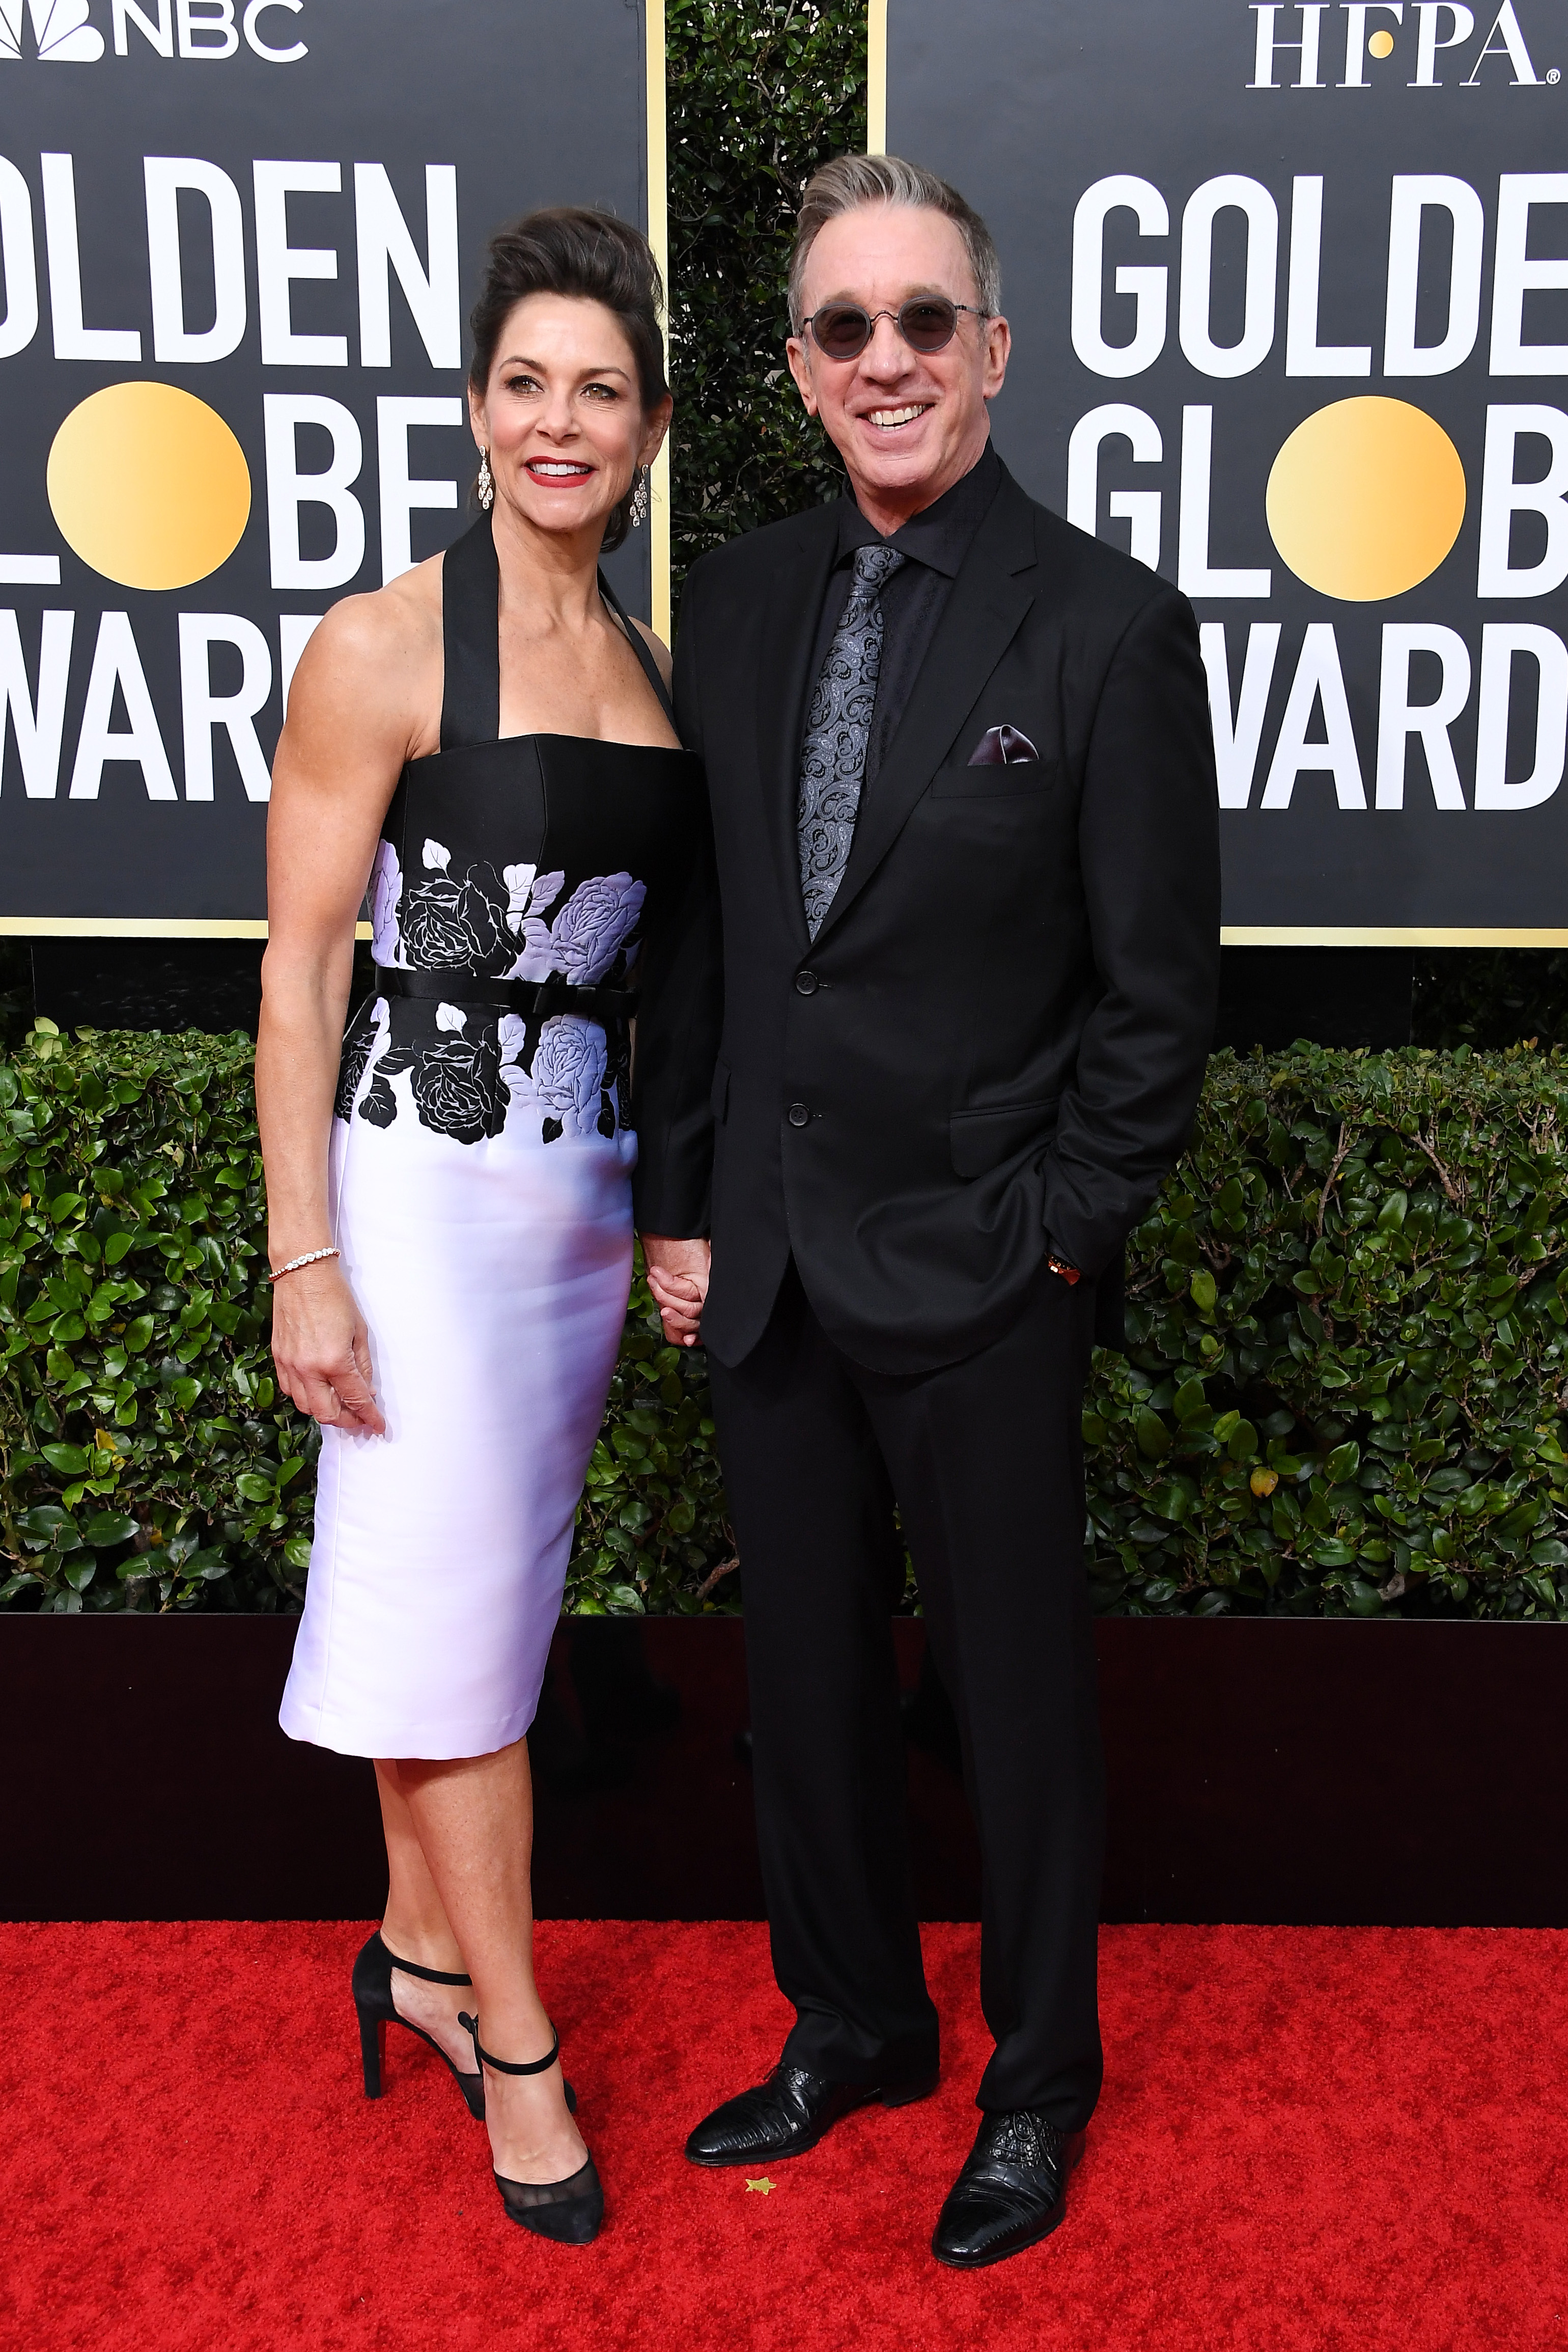 BEVERLY HILLS, CALIFORNIA - JANUARY 05: Jane Hajduk and Tim Allen attend the 77th Annual Golden Globe Awards at The Beverly Hilton Hotel on January 05, 2020 in Beverly Hills, California. (Photo by Steve Granitz/WireImage)